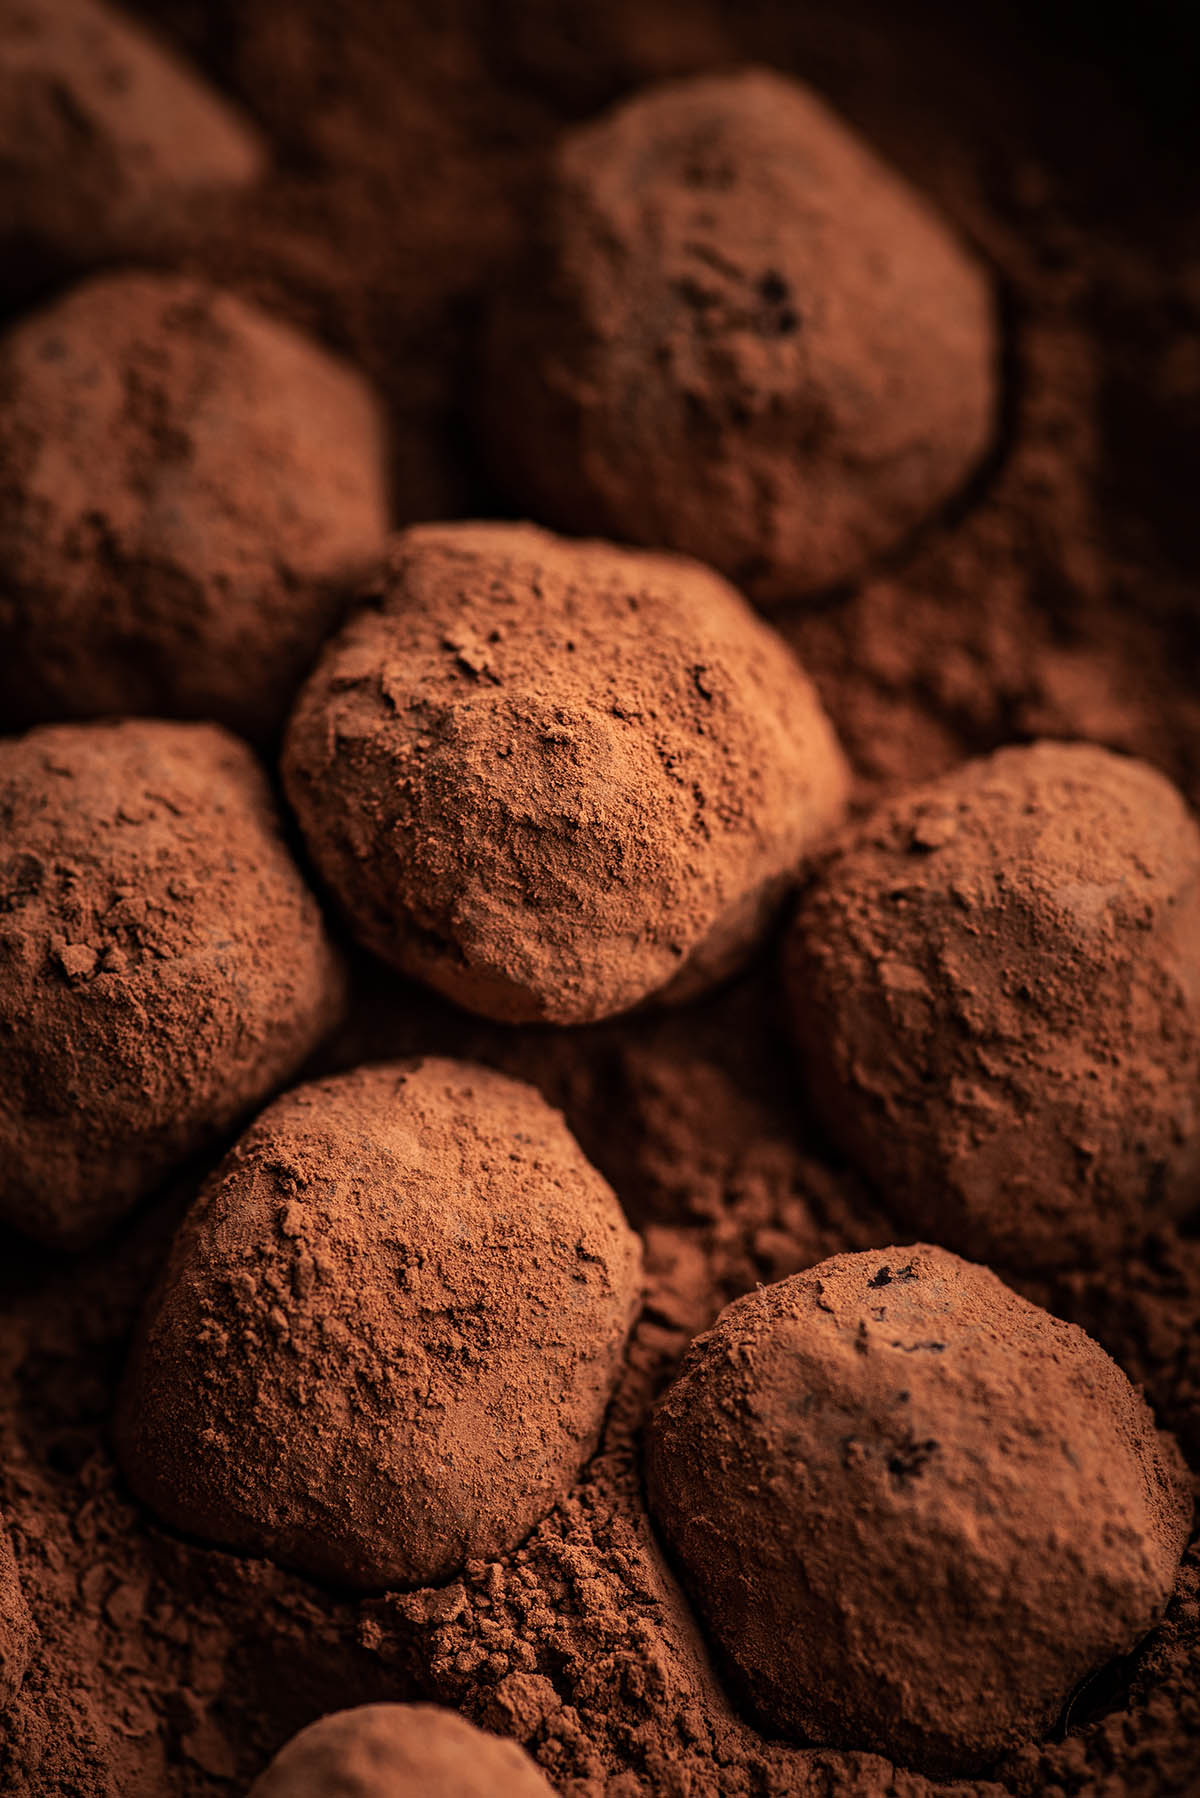 Close up of truffles in cocoa.